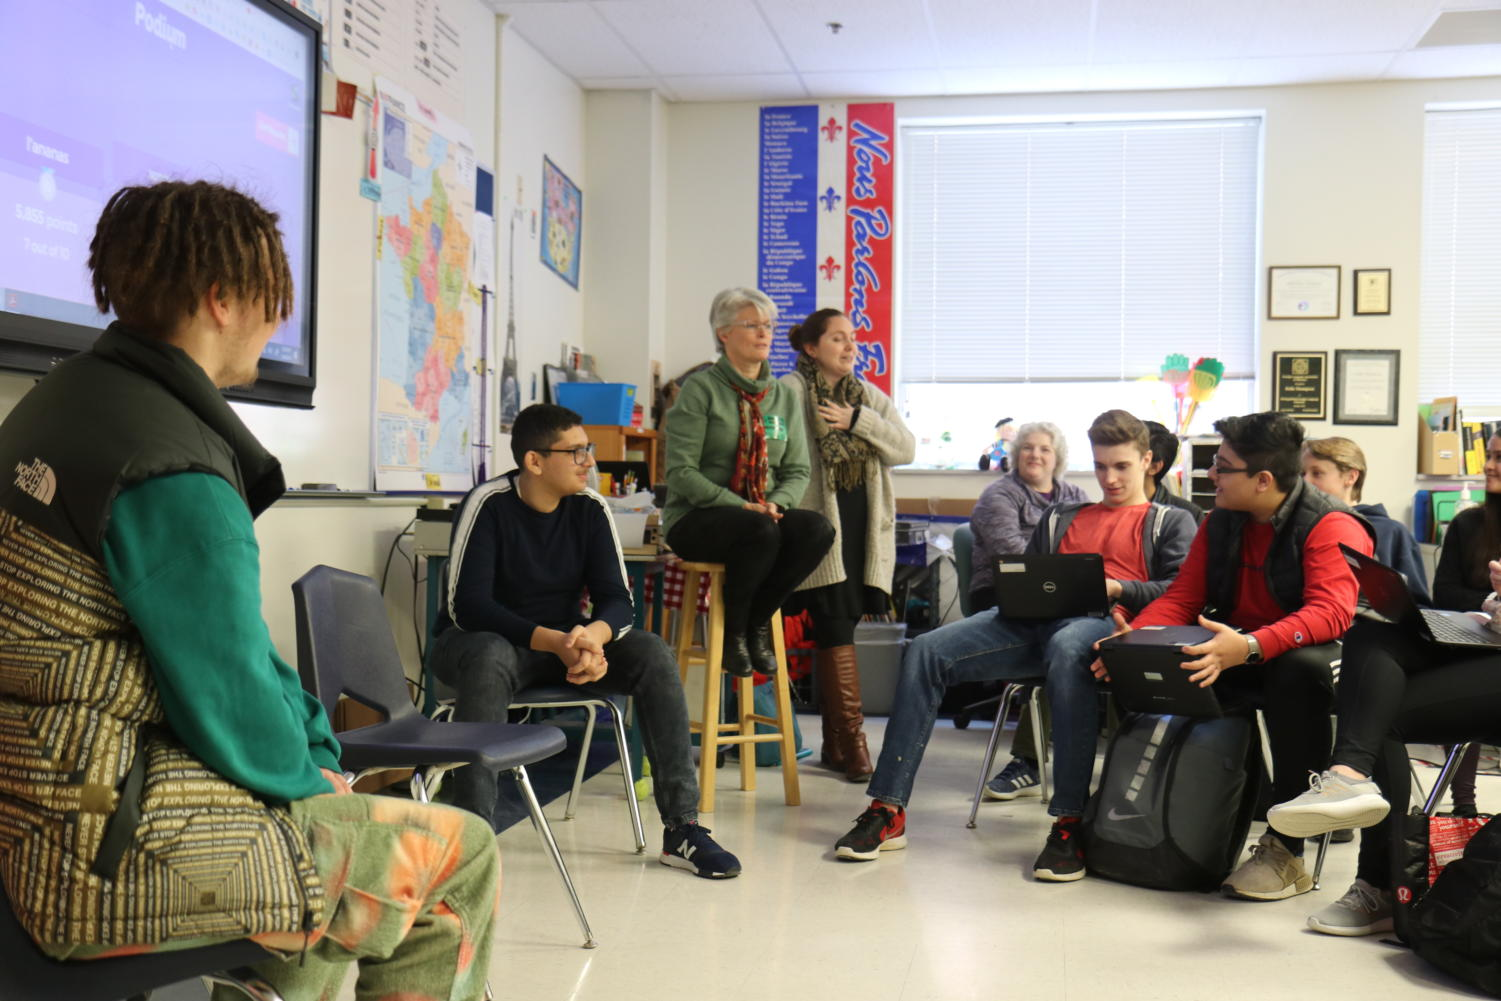 [Left to right]  Quentin Nauge and Salim Saoud, juniors, speak to students in a french class after giving a presentation on on cultural differences between the U.S. and France.